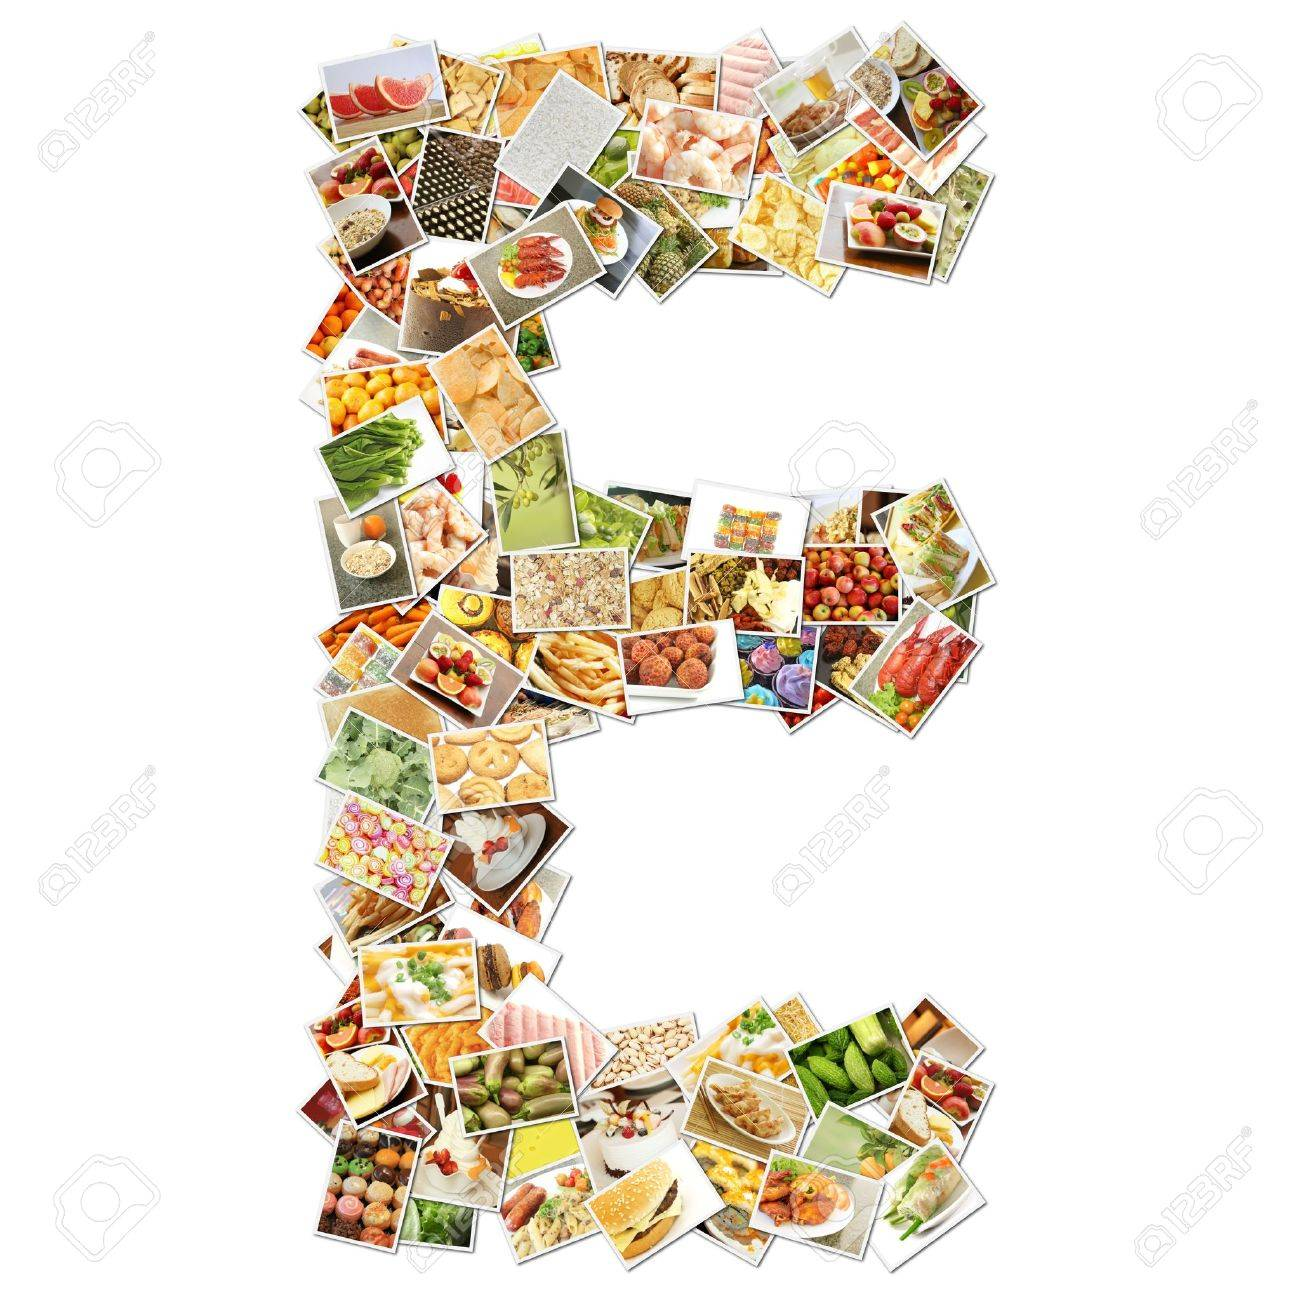 letter e food collage concept art stock photo picture and letter e food collage concept art stock photo 9691840